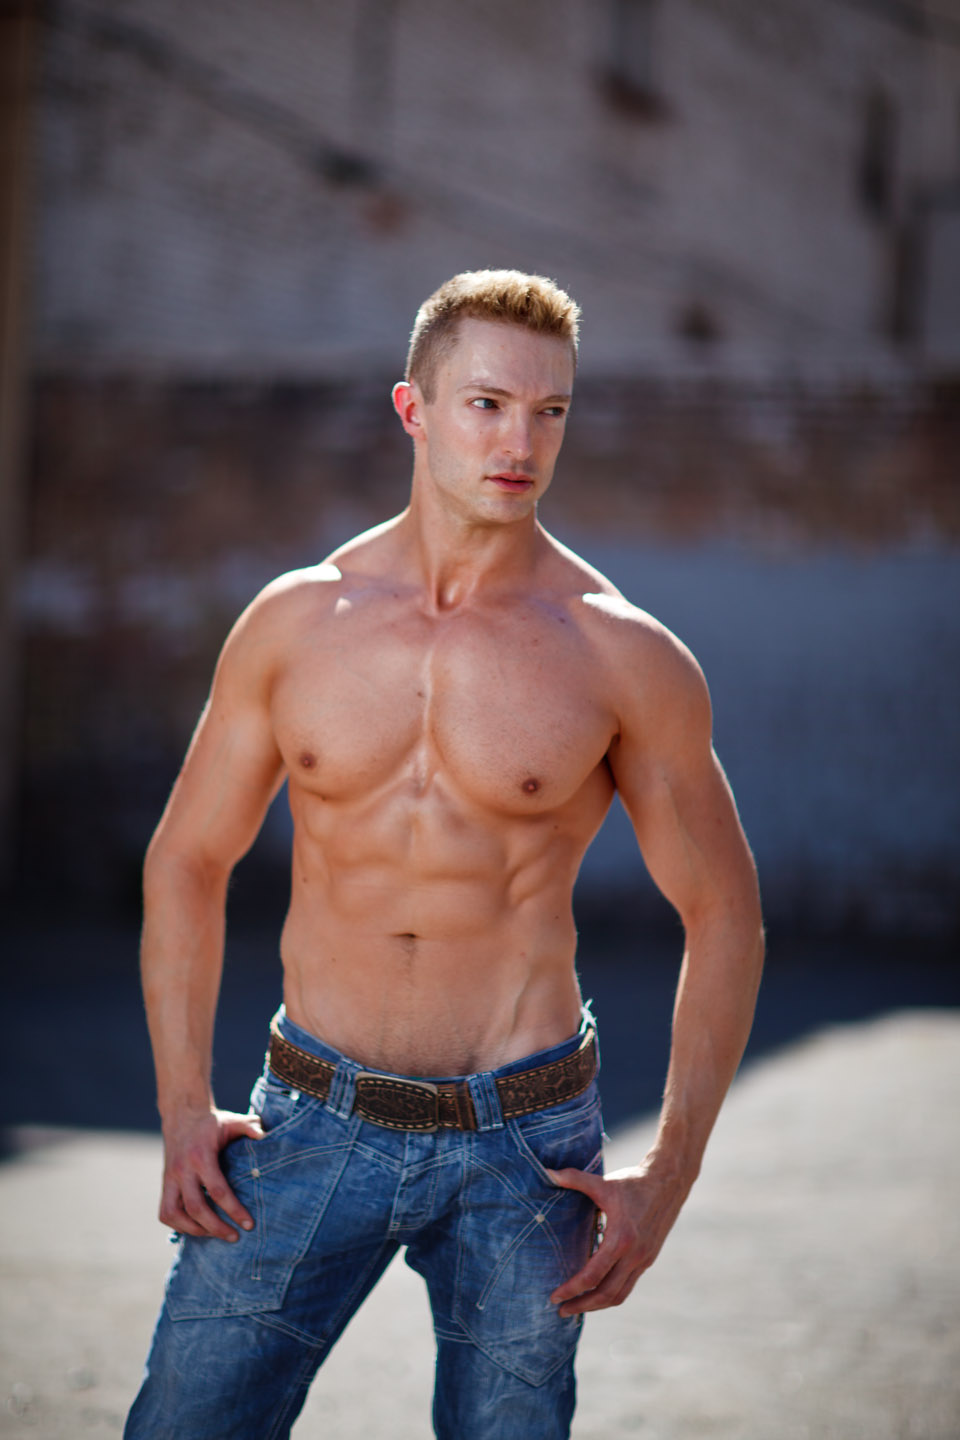 Sun and muscle